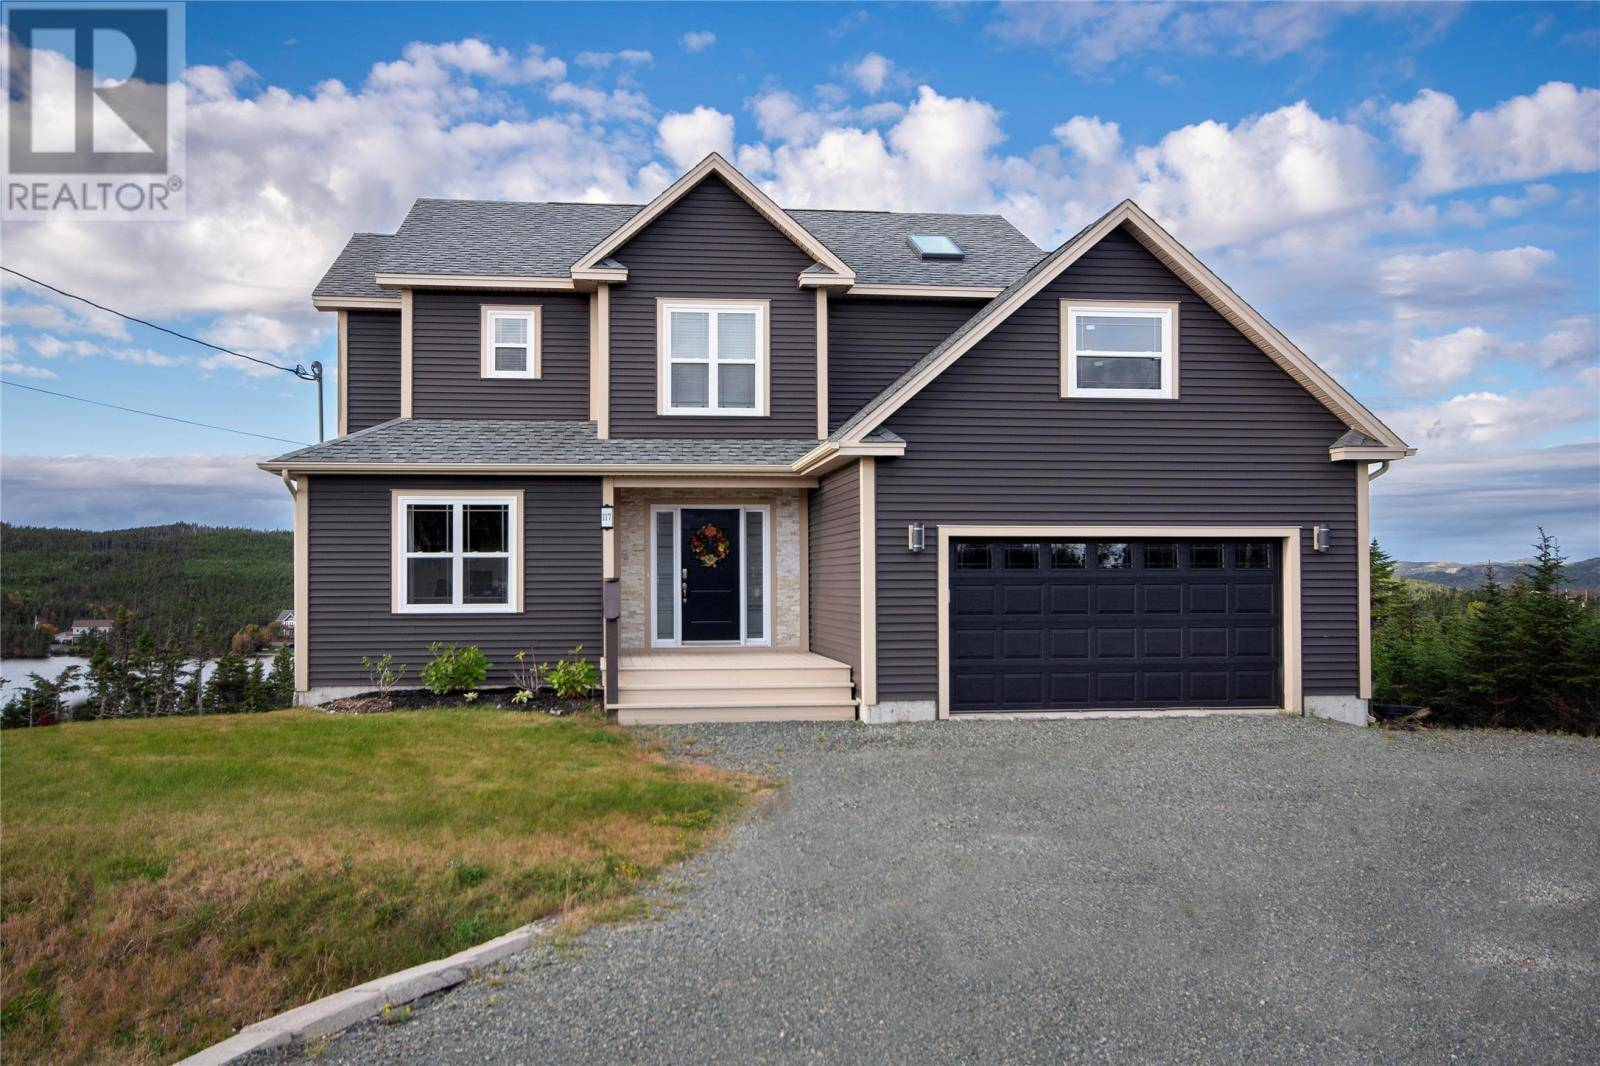 House for sale at 117 Round Pond Rd Portugal Cove St. Philips Newfoundland - MLS: 1205406